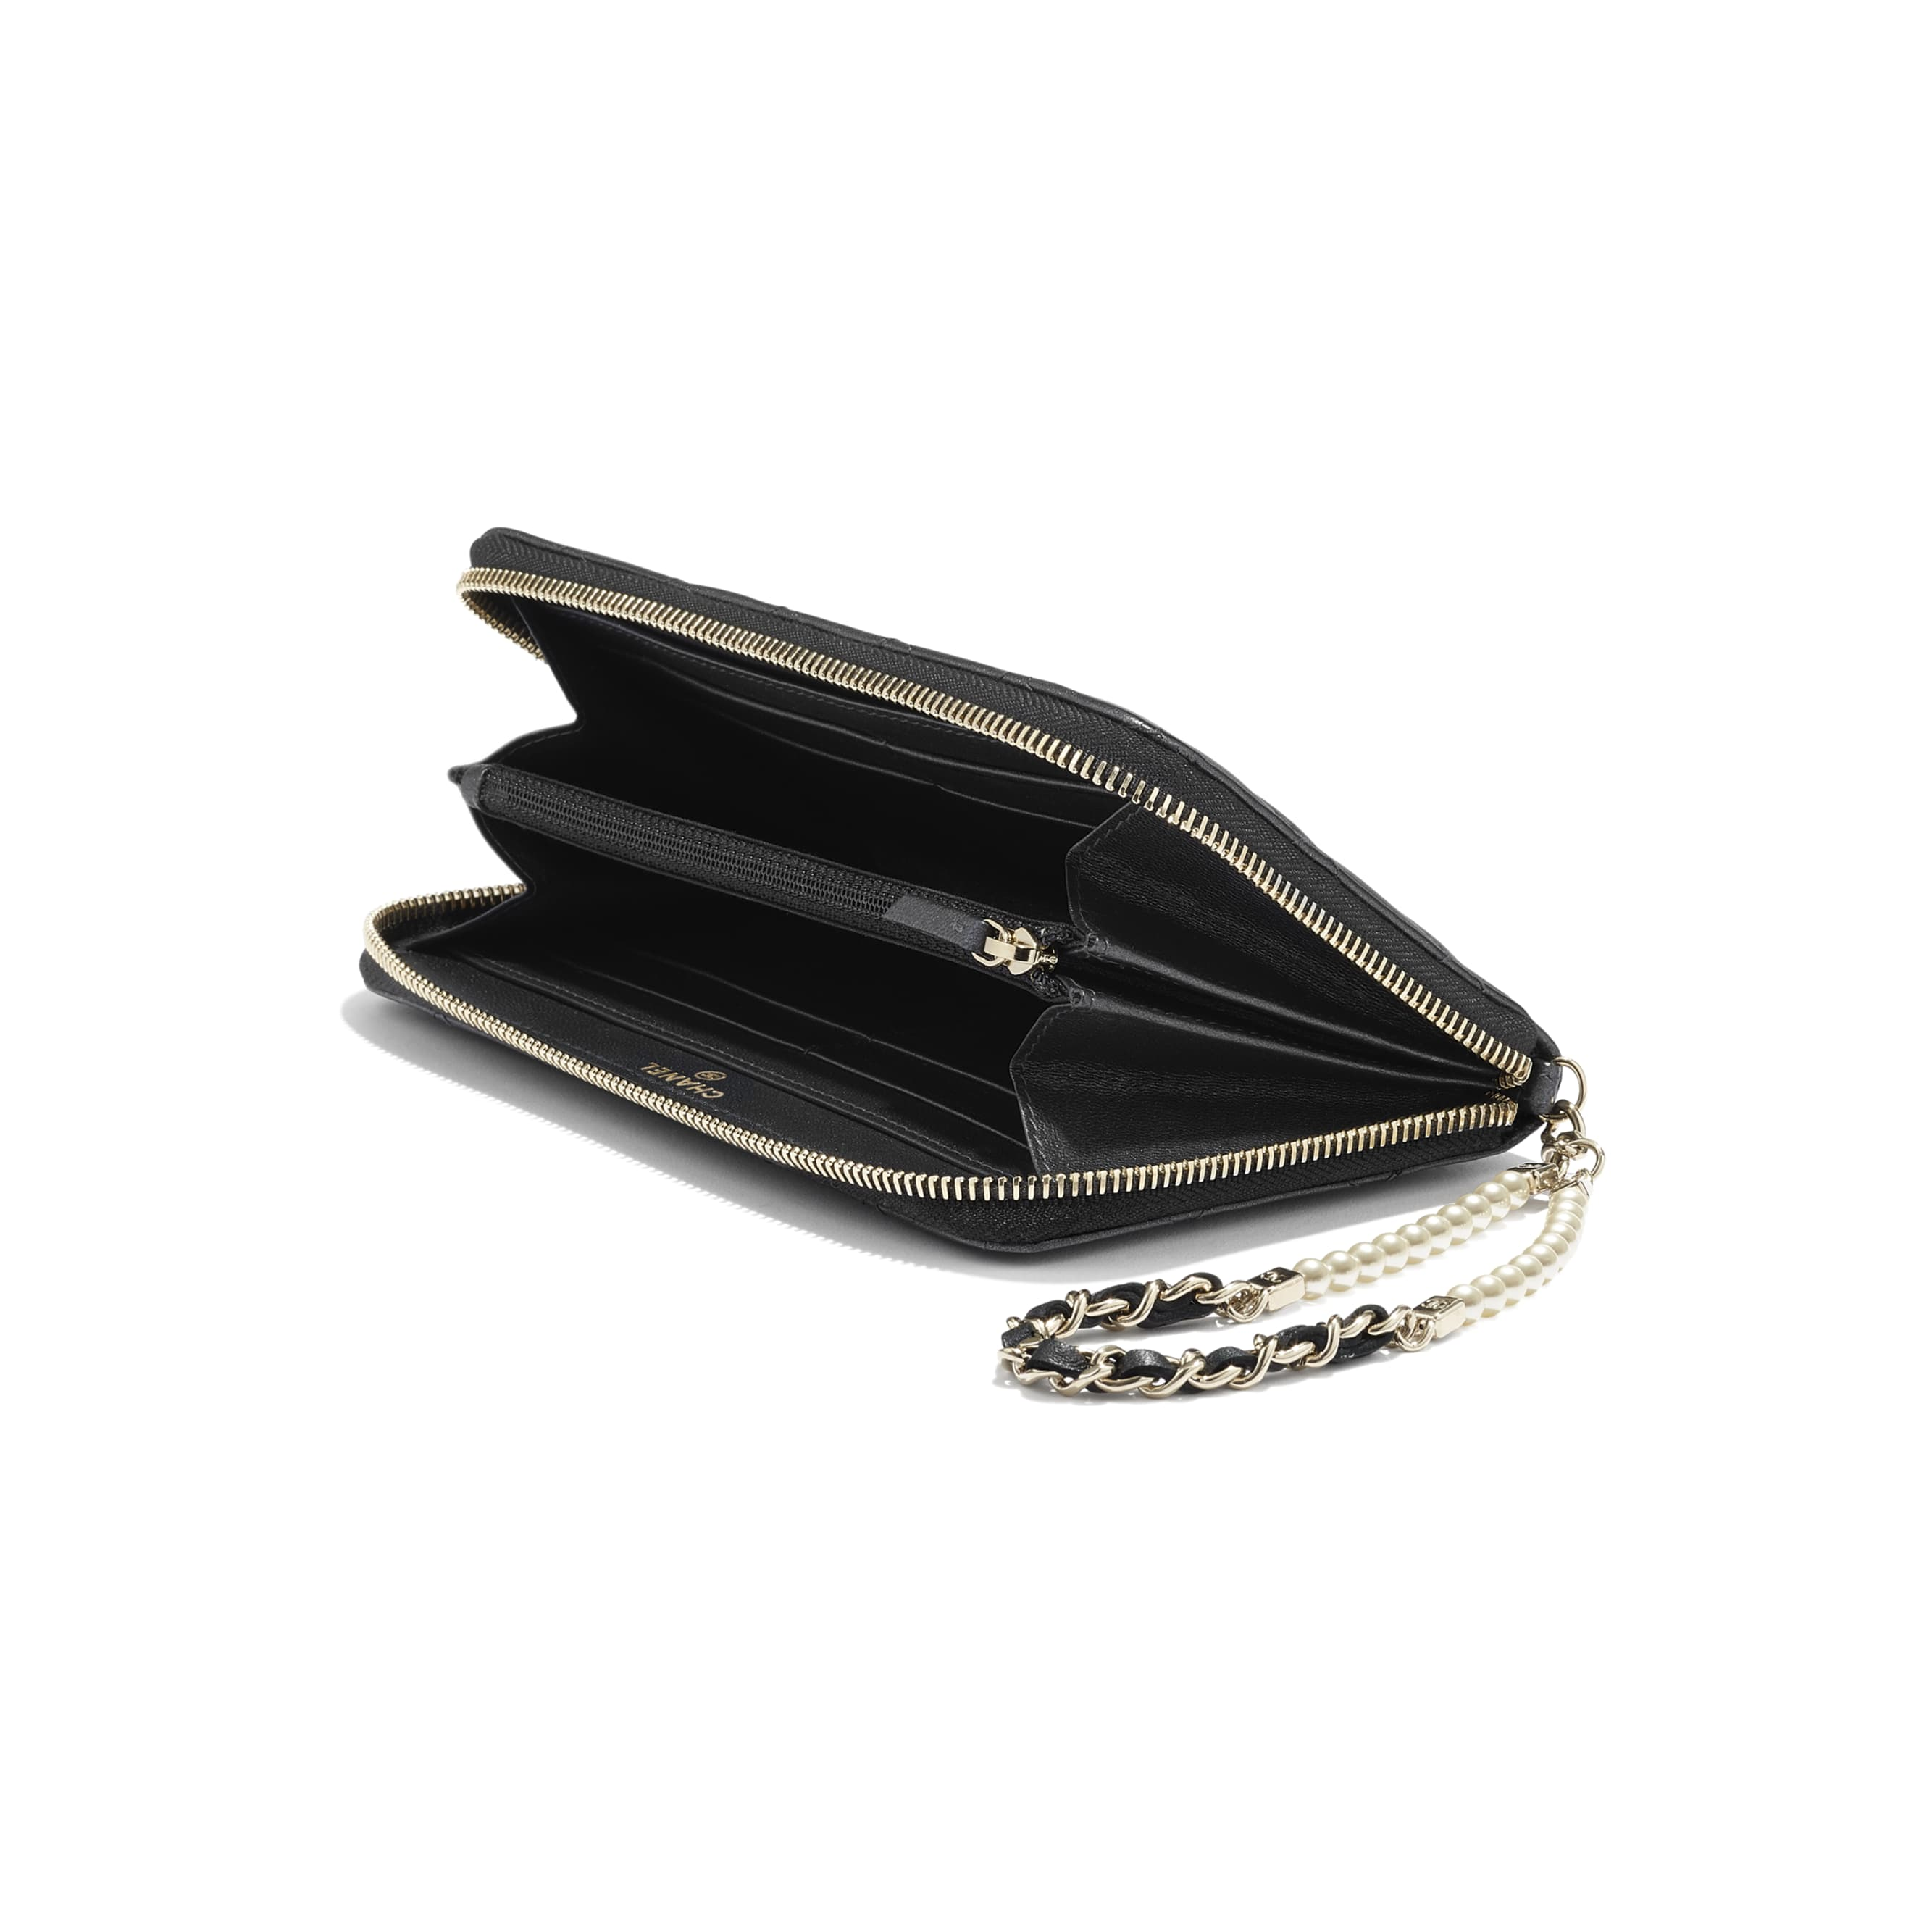 Zipped Wallet With Handle - Black - Iridescent lambskin & gold-tone metal - CHANEL - Extra view - see standard sized version